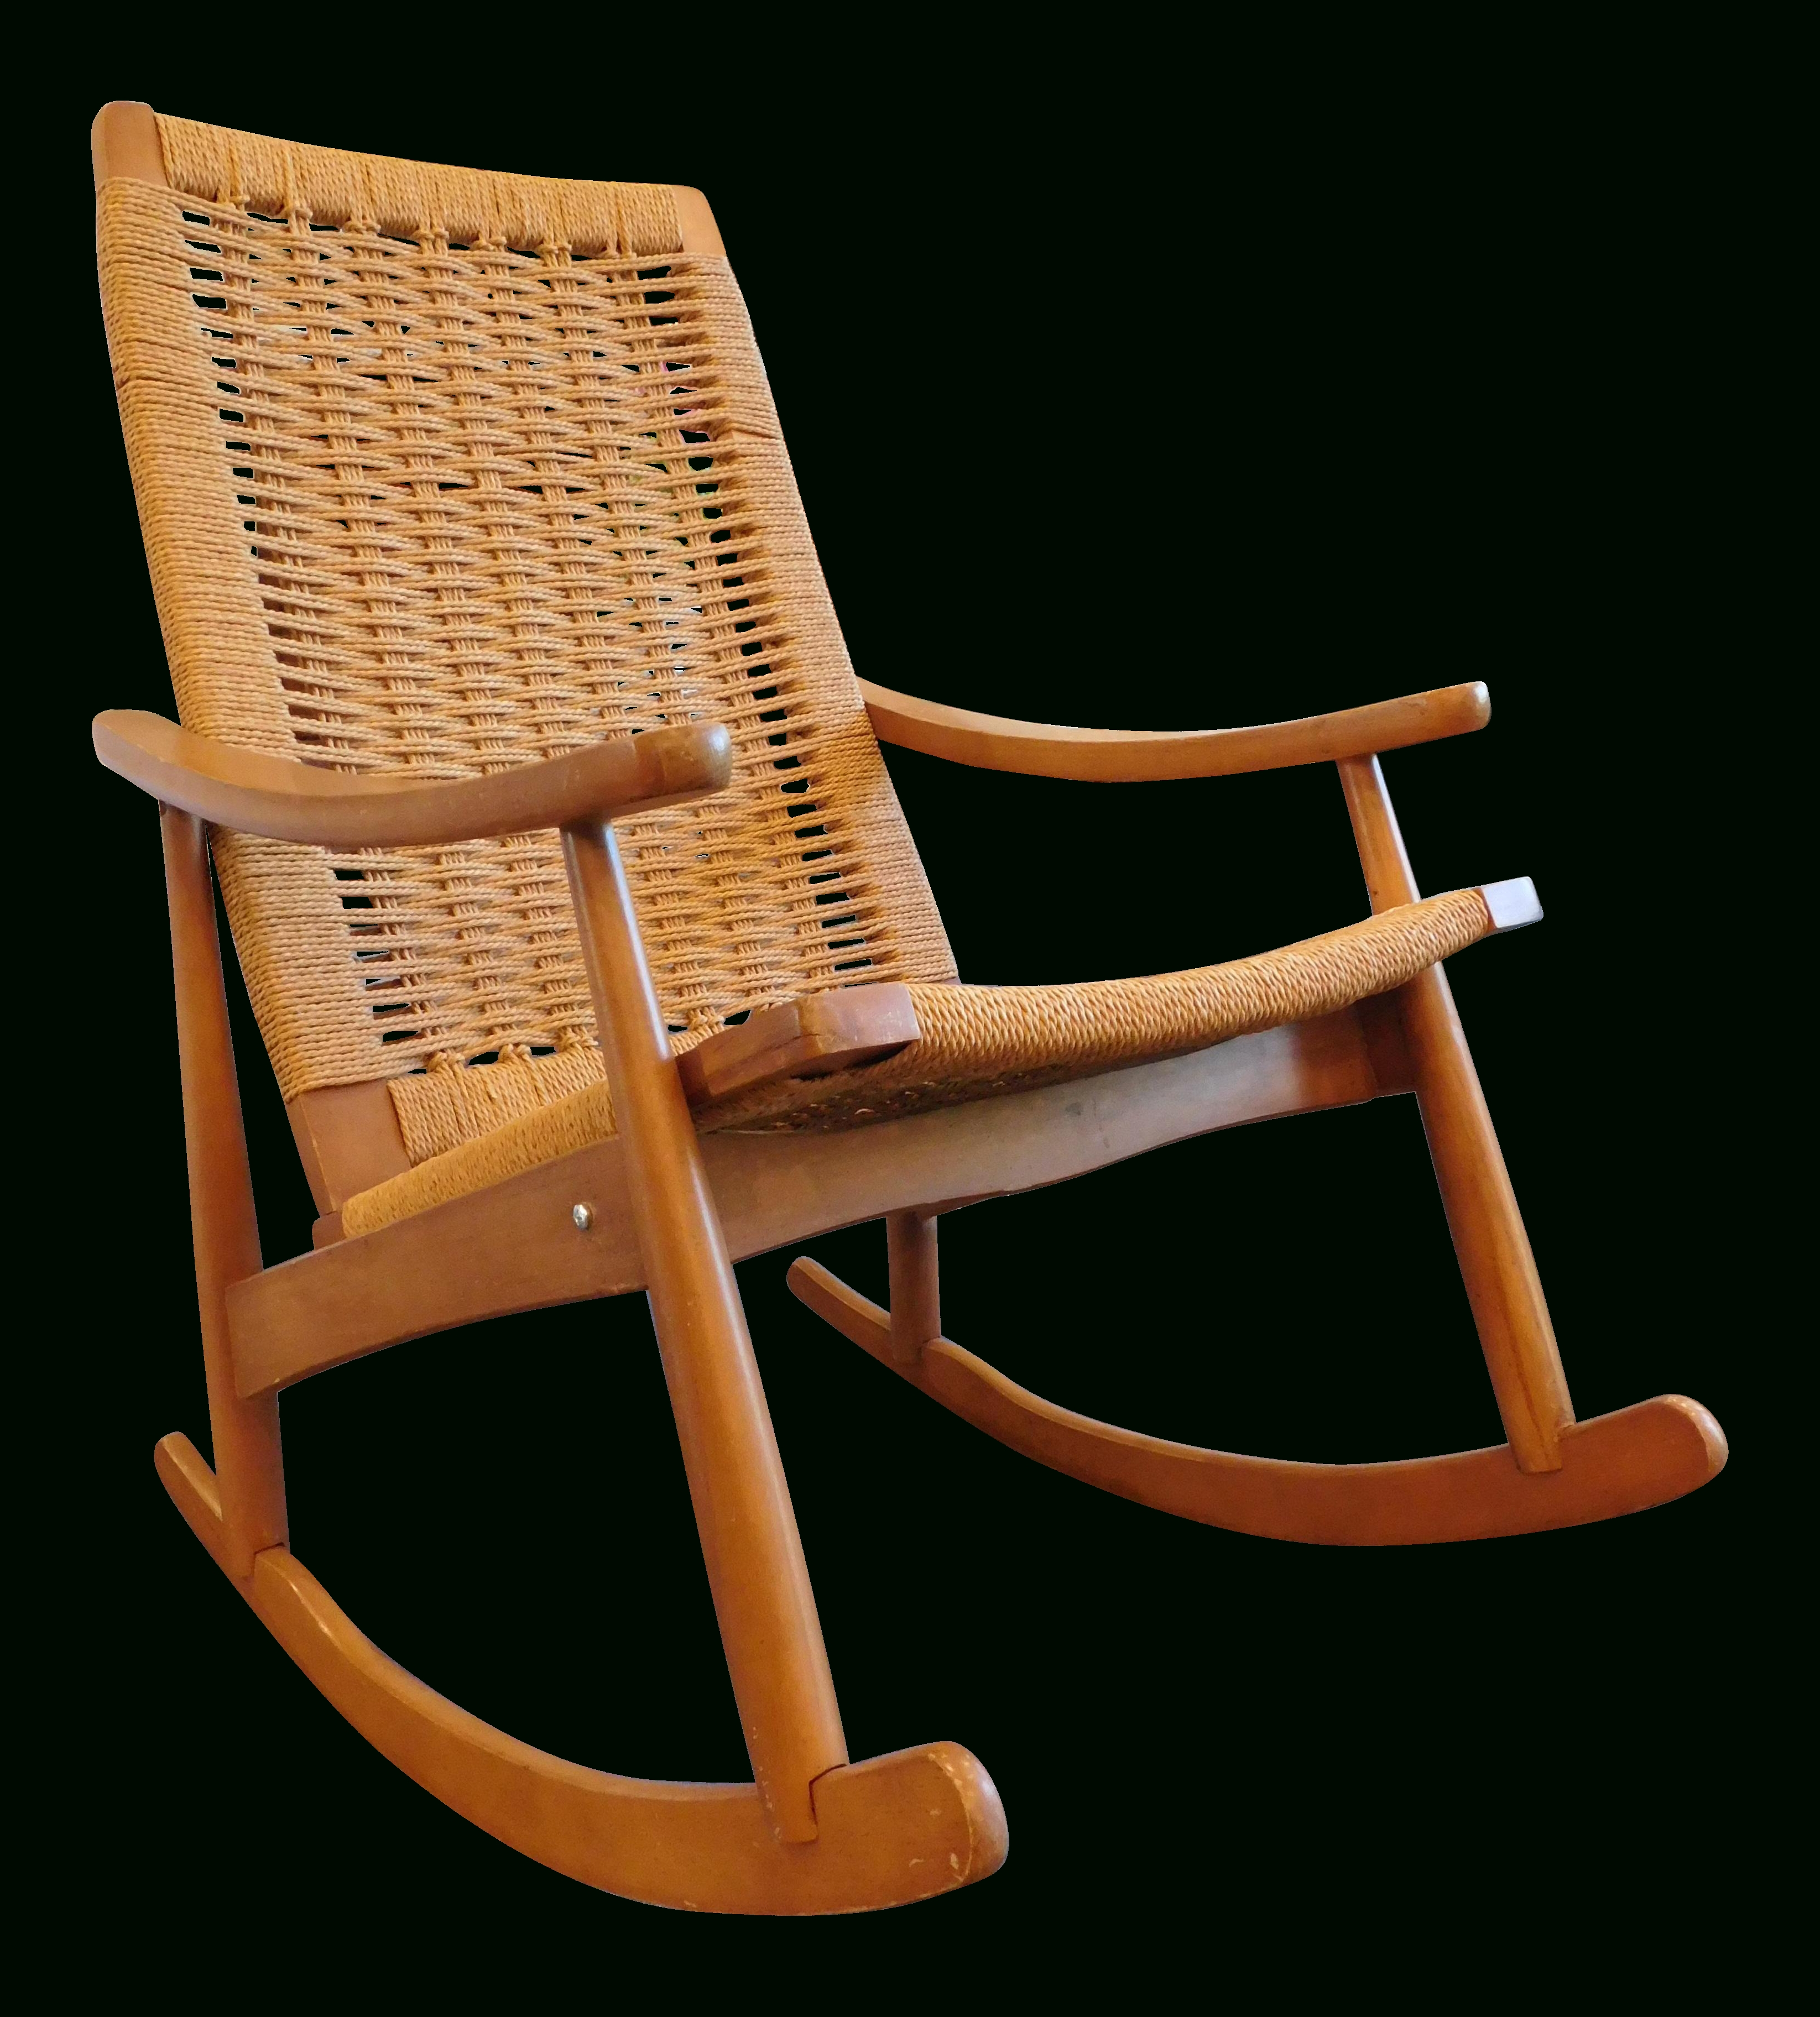 Widely Used Vintage Wicker Rocking Chairs Intended For Vintage Yugoslavian Hans Wegner Style Wicker Rocking Chair (View 15 of 15)